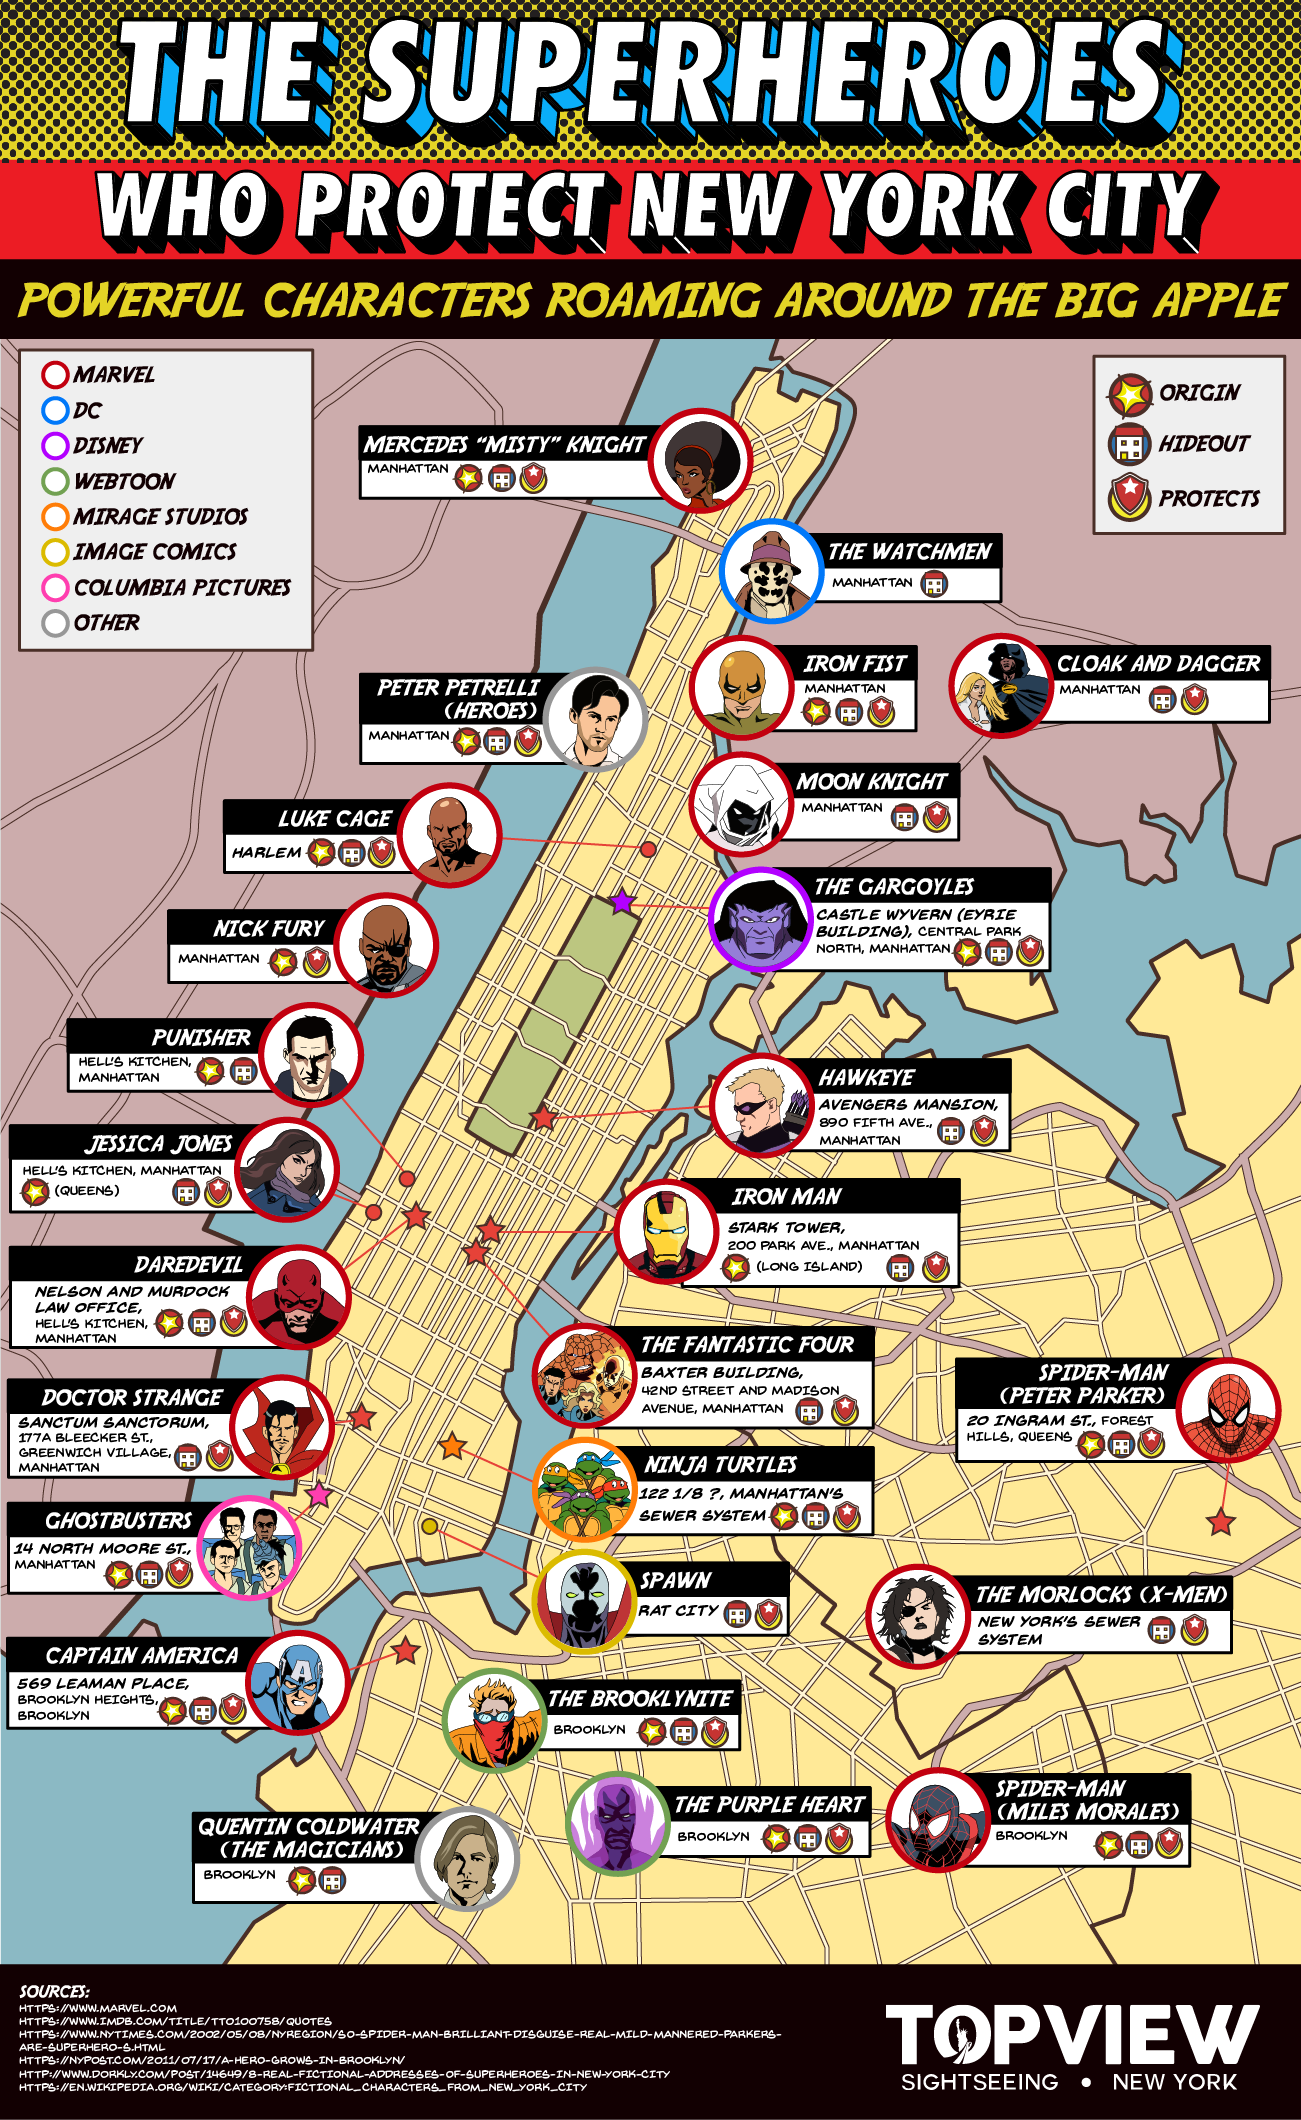 The Superheroes Who Protect NYC